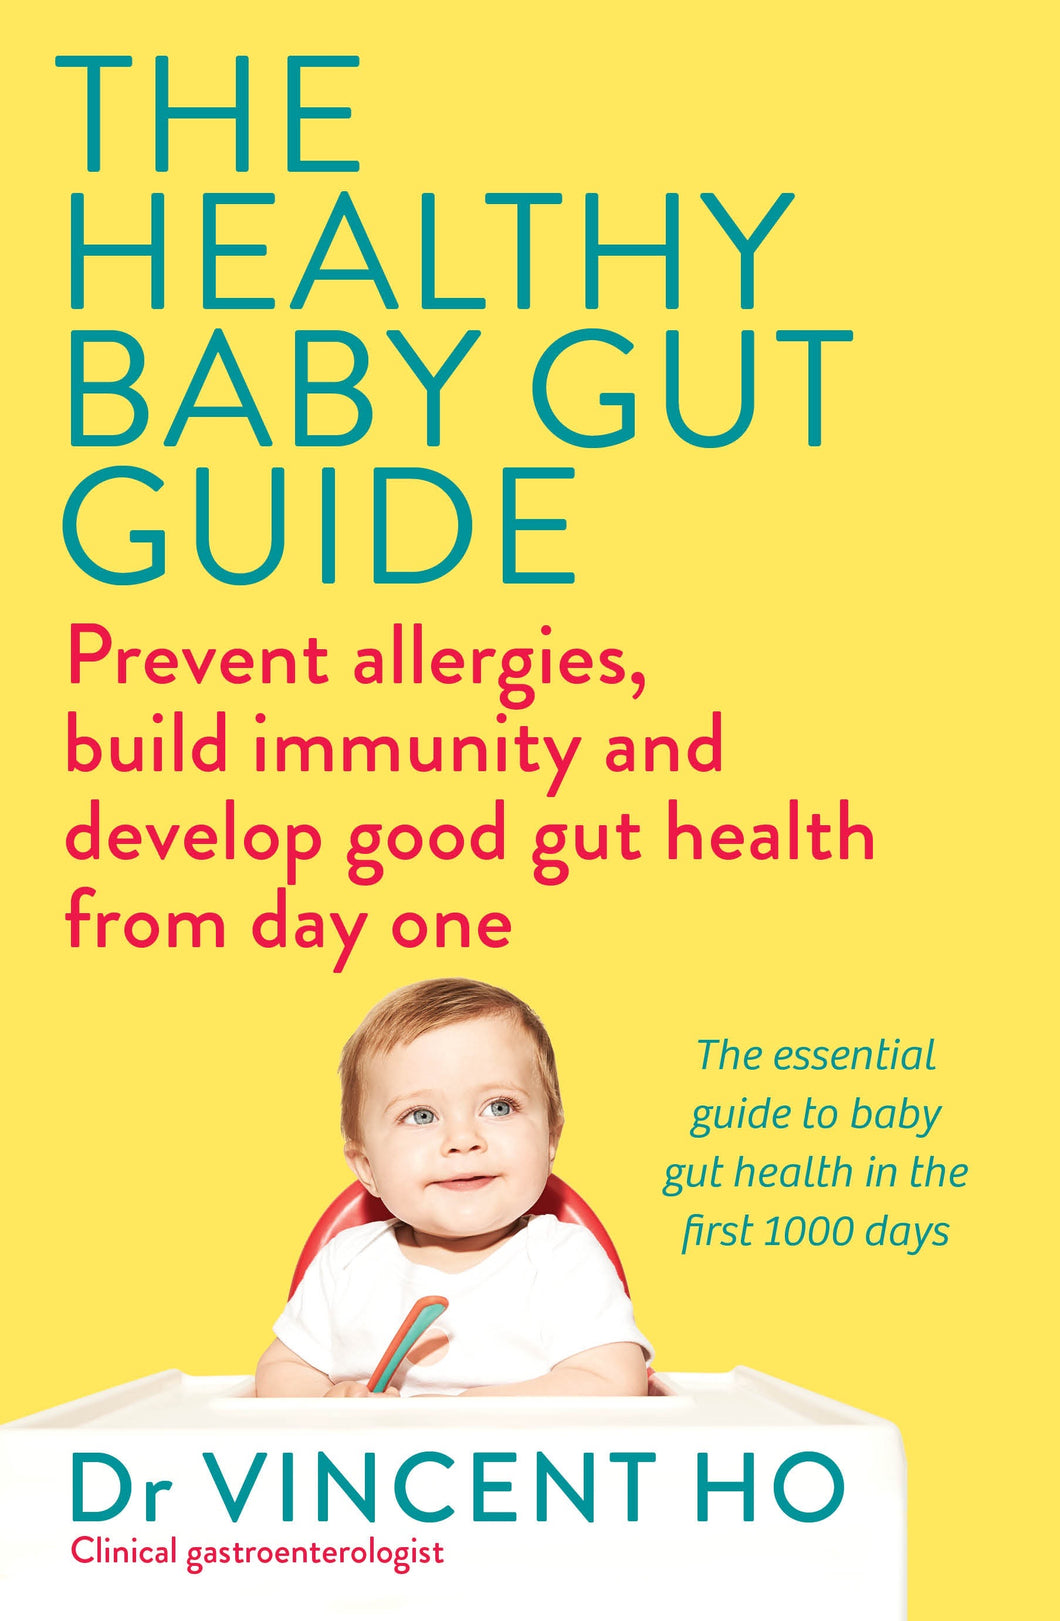 The Healthy Baby Gut Guide by Dr Vincent Ho